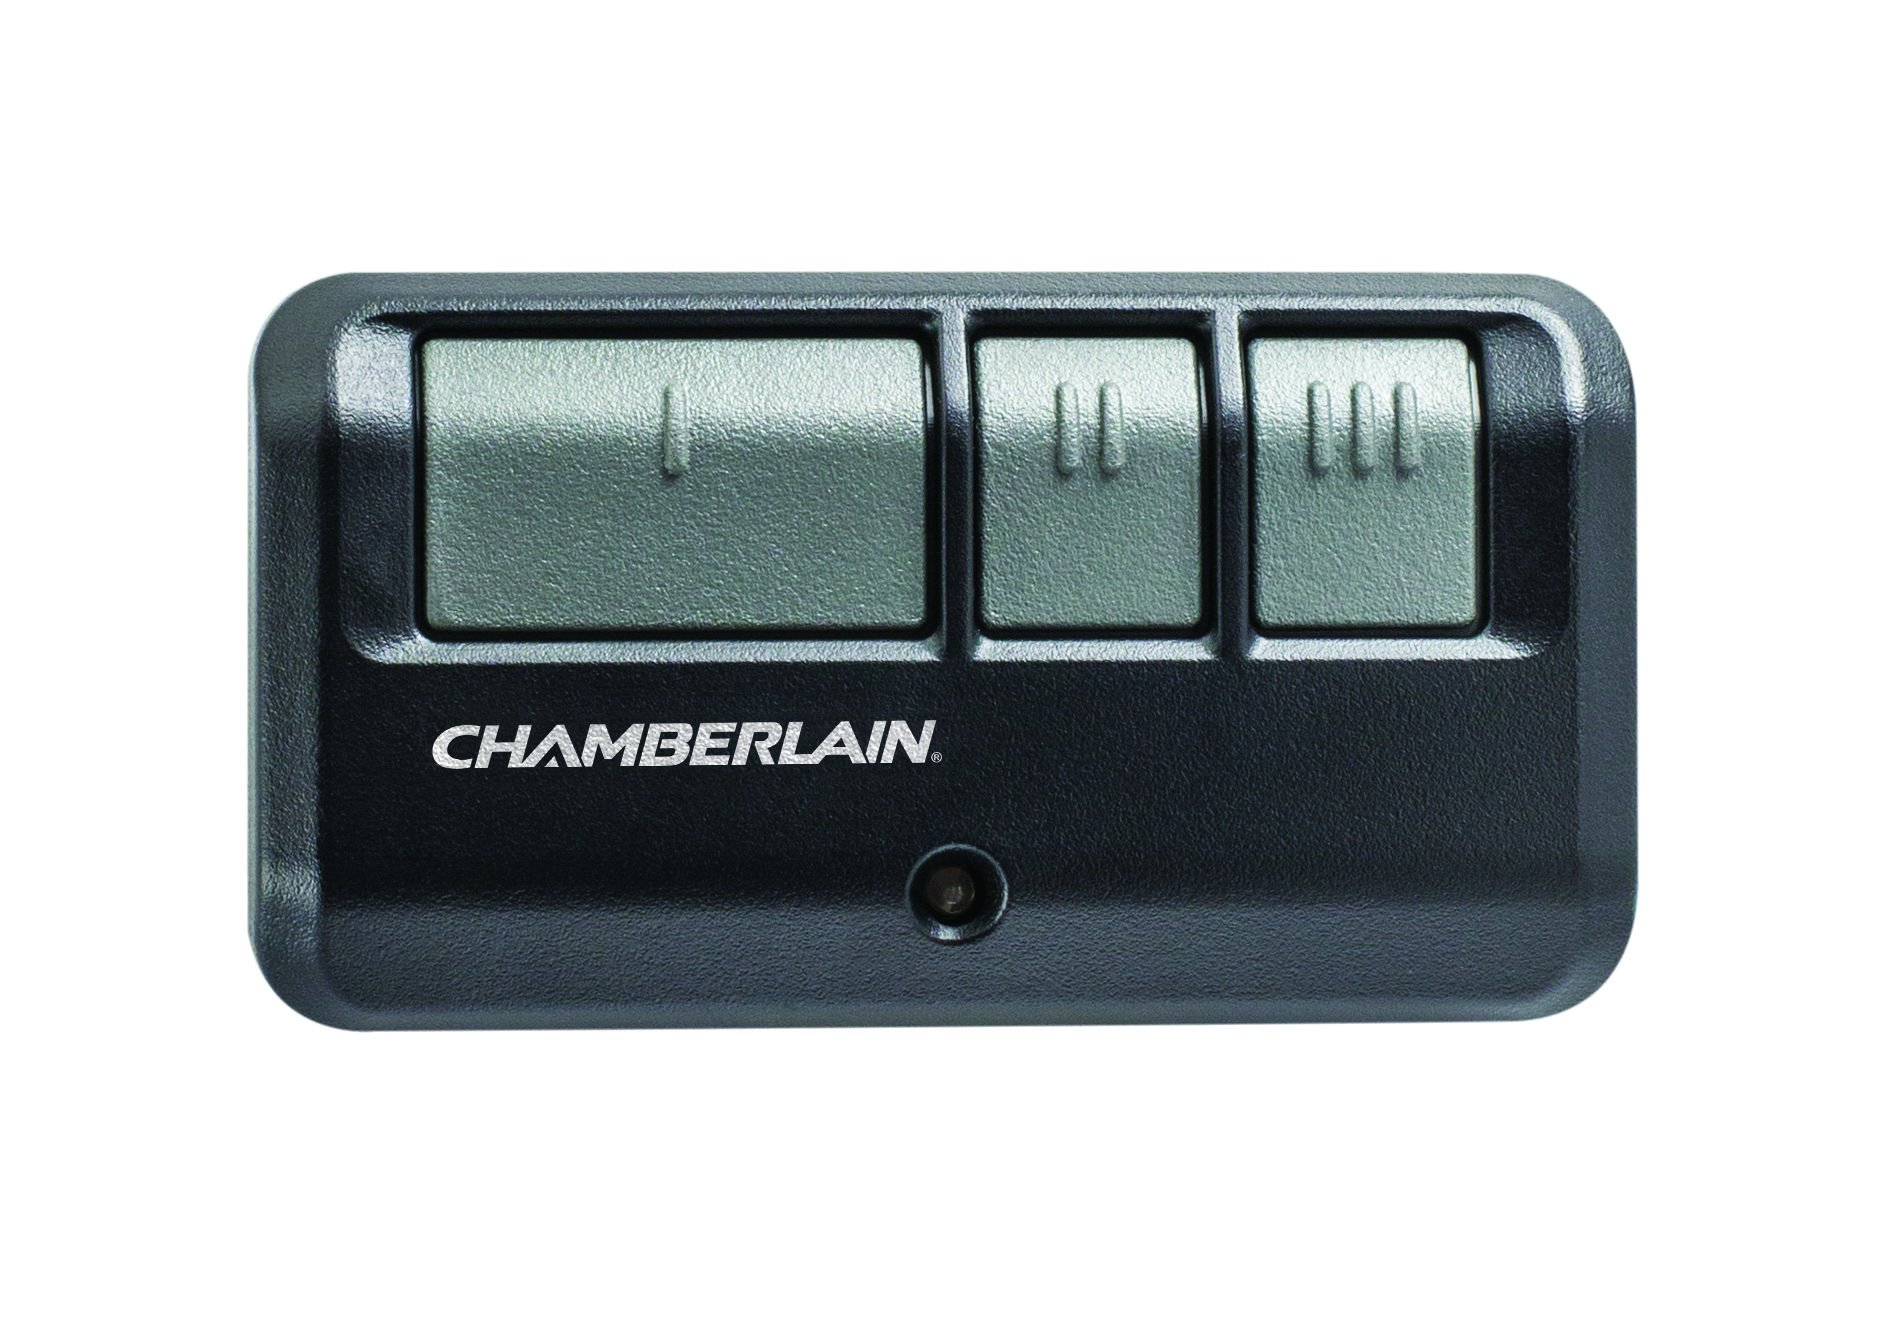 Chamberlain Group G953EV-P2 Chamberlain/LiftMaster/Craftsman 953EV-P2 3-Button, Security +2.0 Compatible, Includes Visor Clip Garage Door Opener Remote by Chamberlain